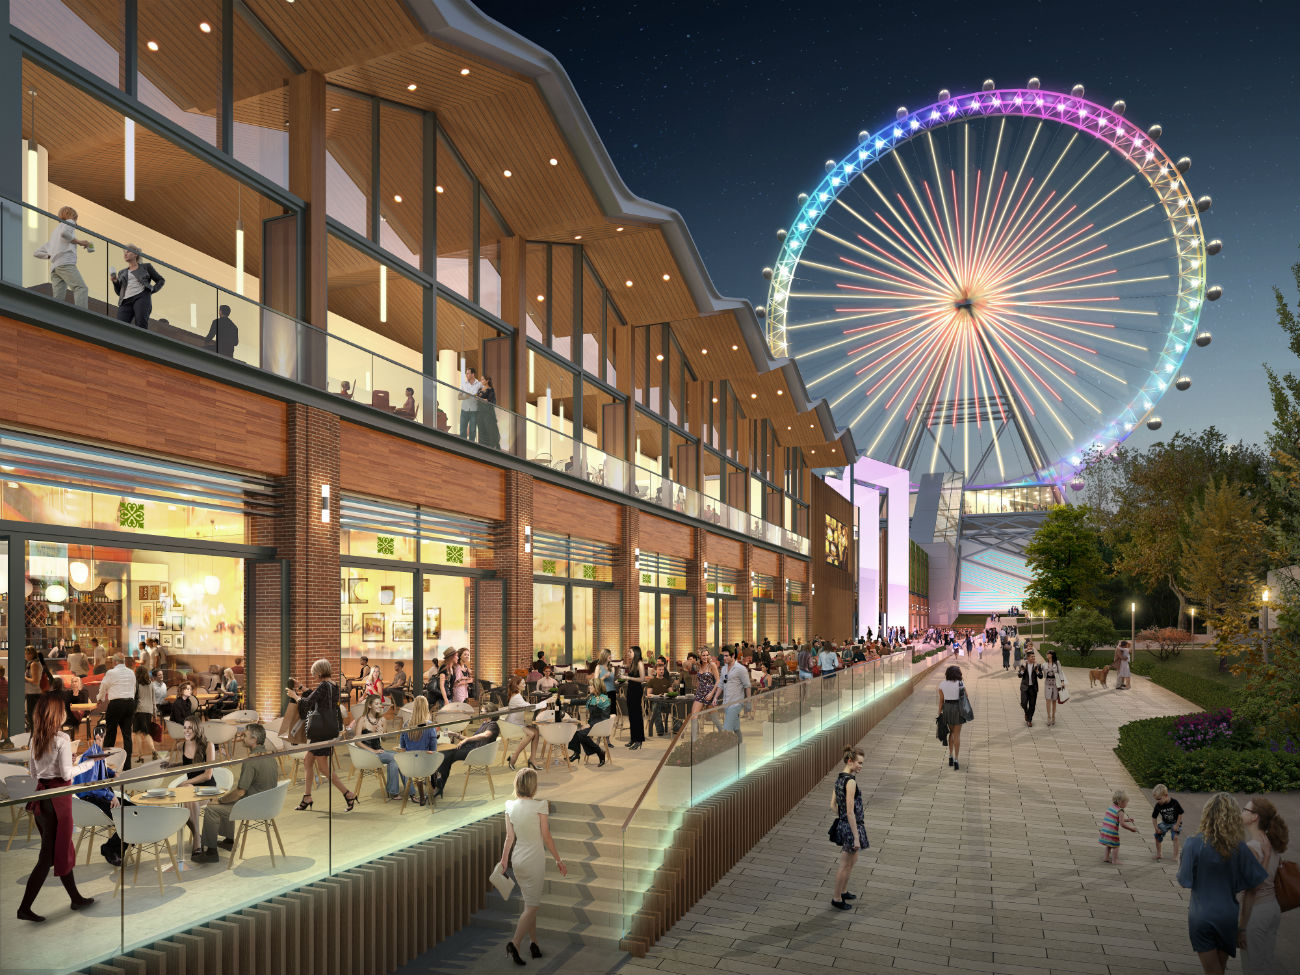 The Moscow wheel will be designed by the architectural firm, Chapman Taylor, and Intamin AG, the Swiss engineering company and maker of equipment for amusement parks.